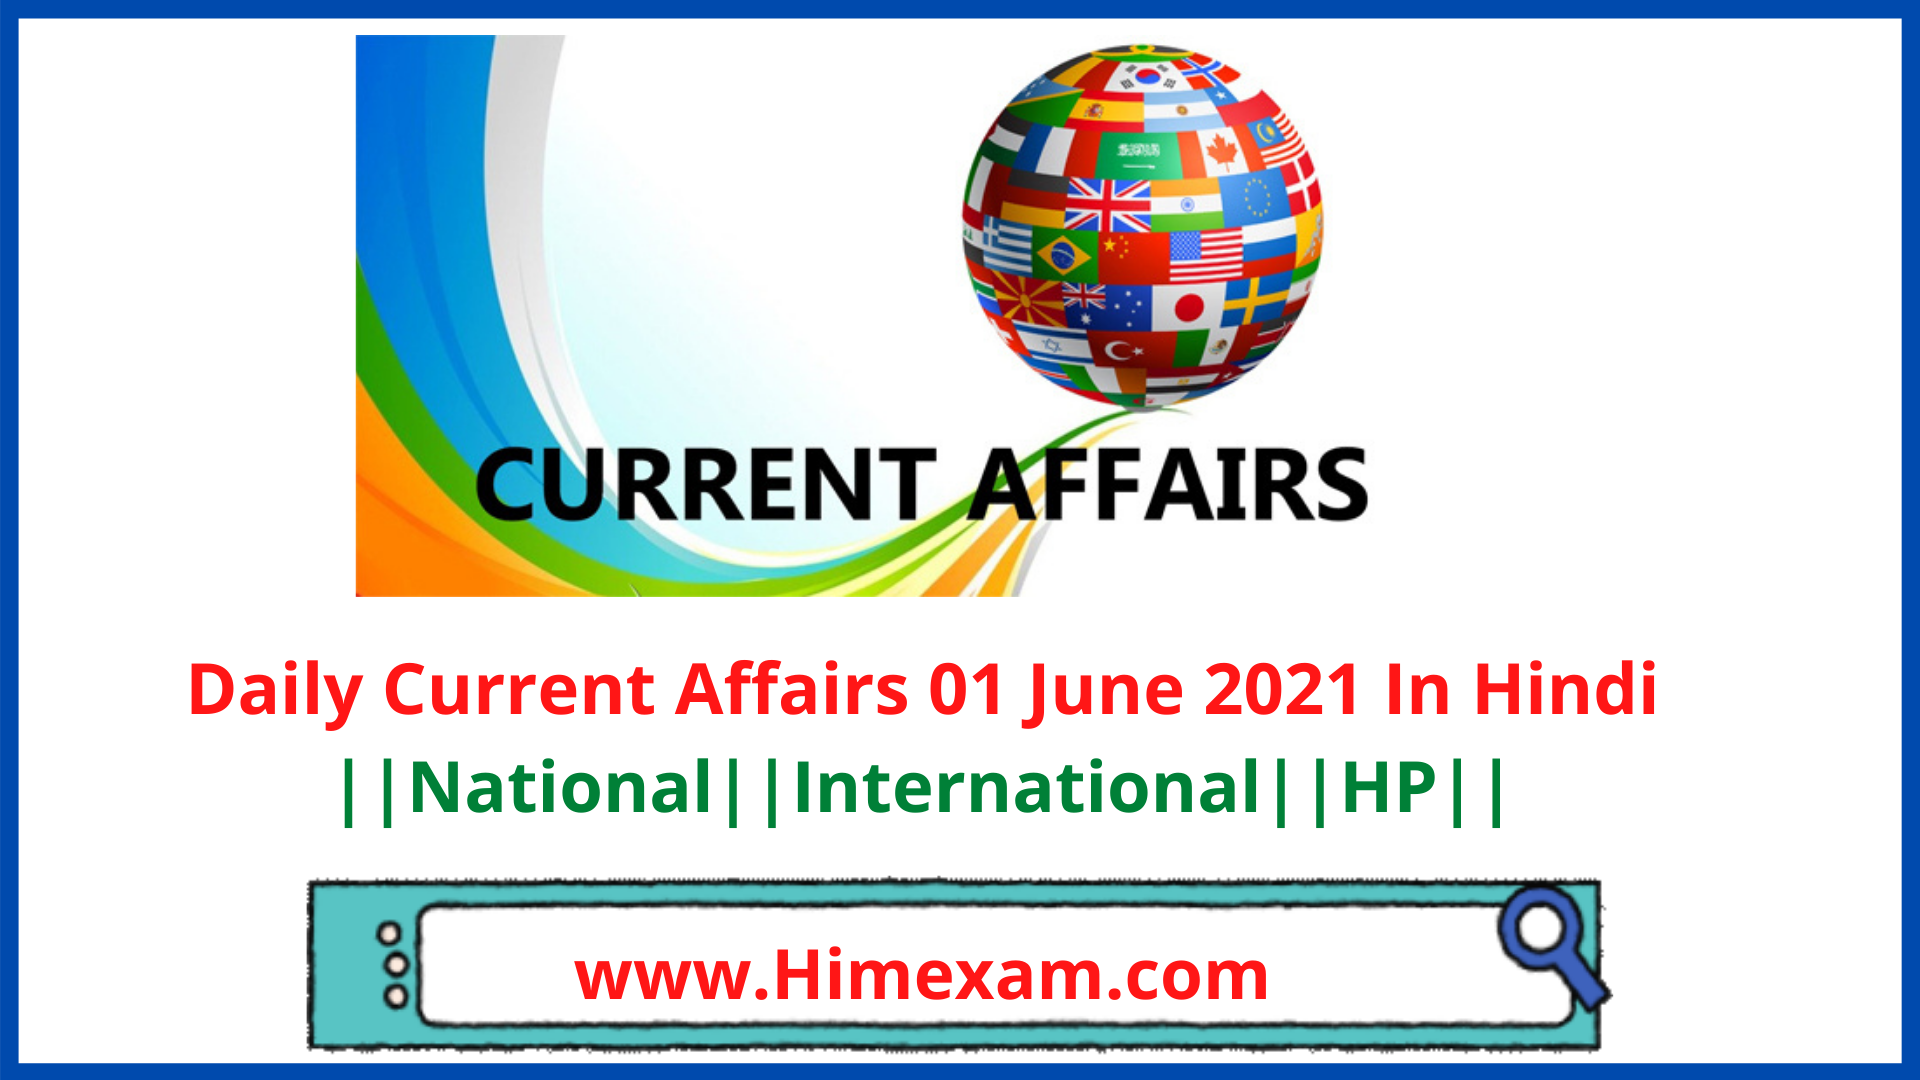 Daily Current Affairs 01 June 2021 In Hindi